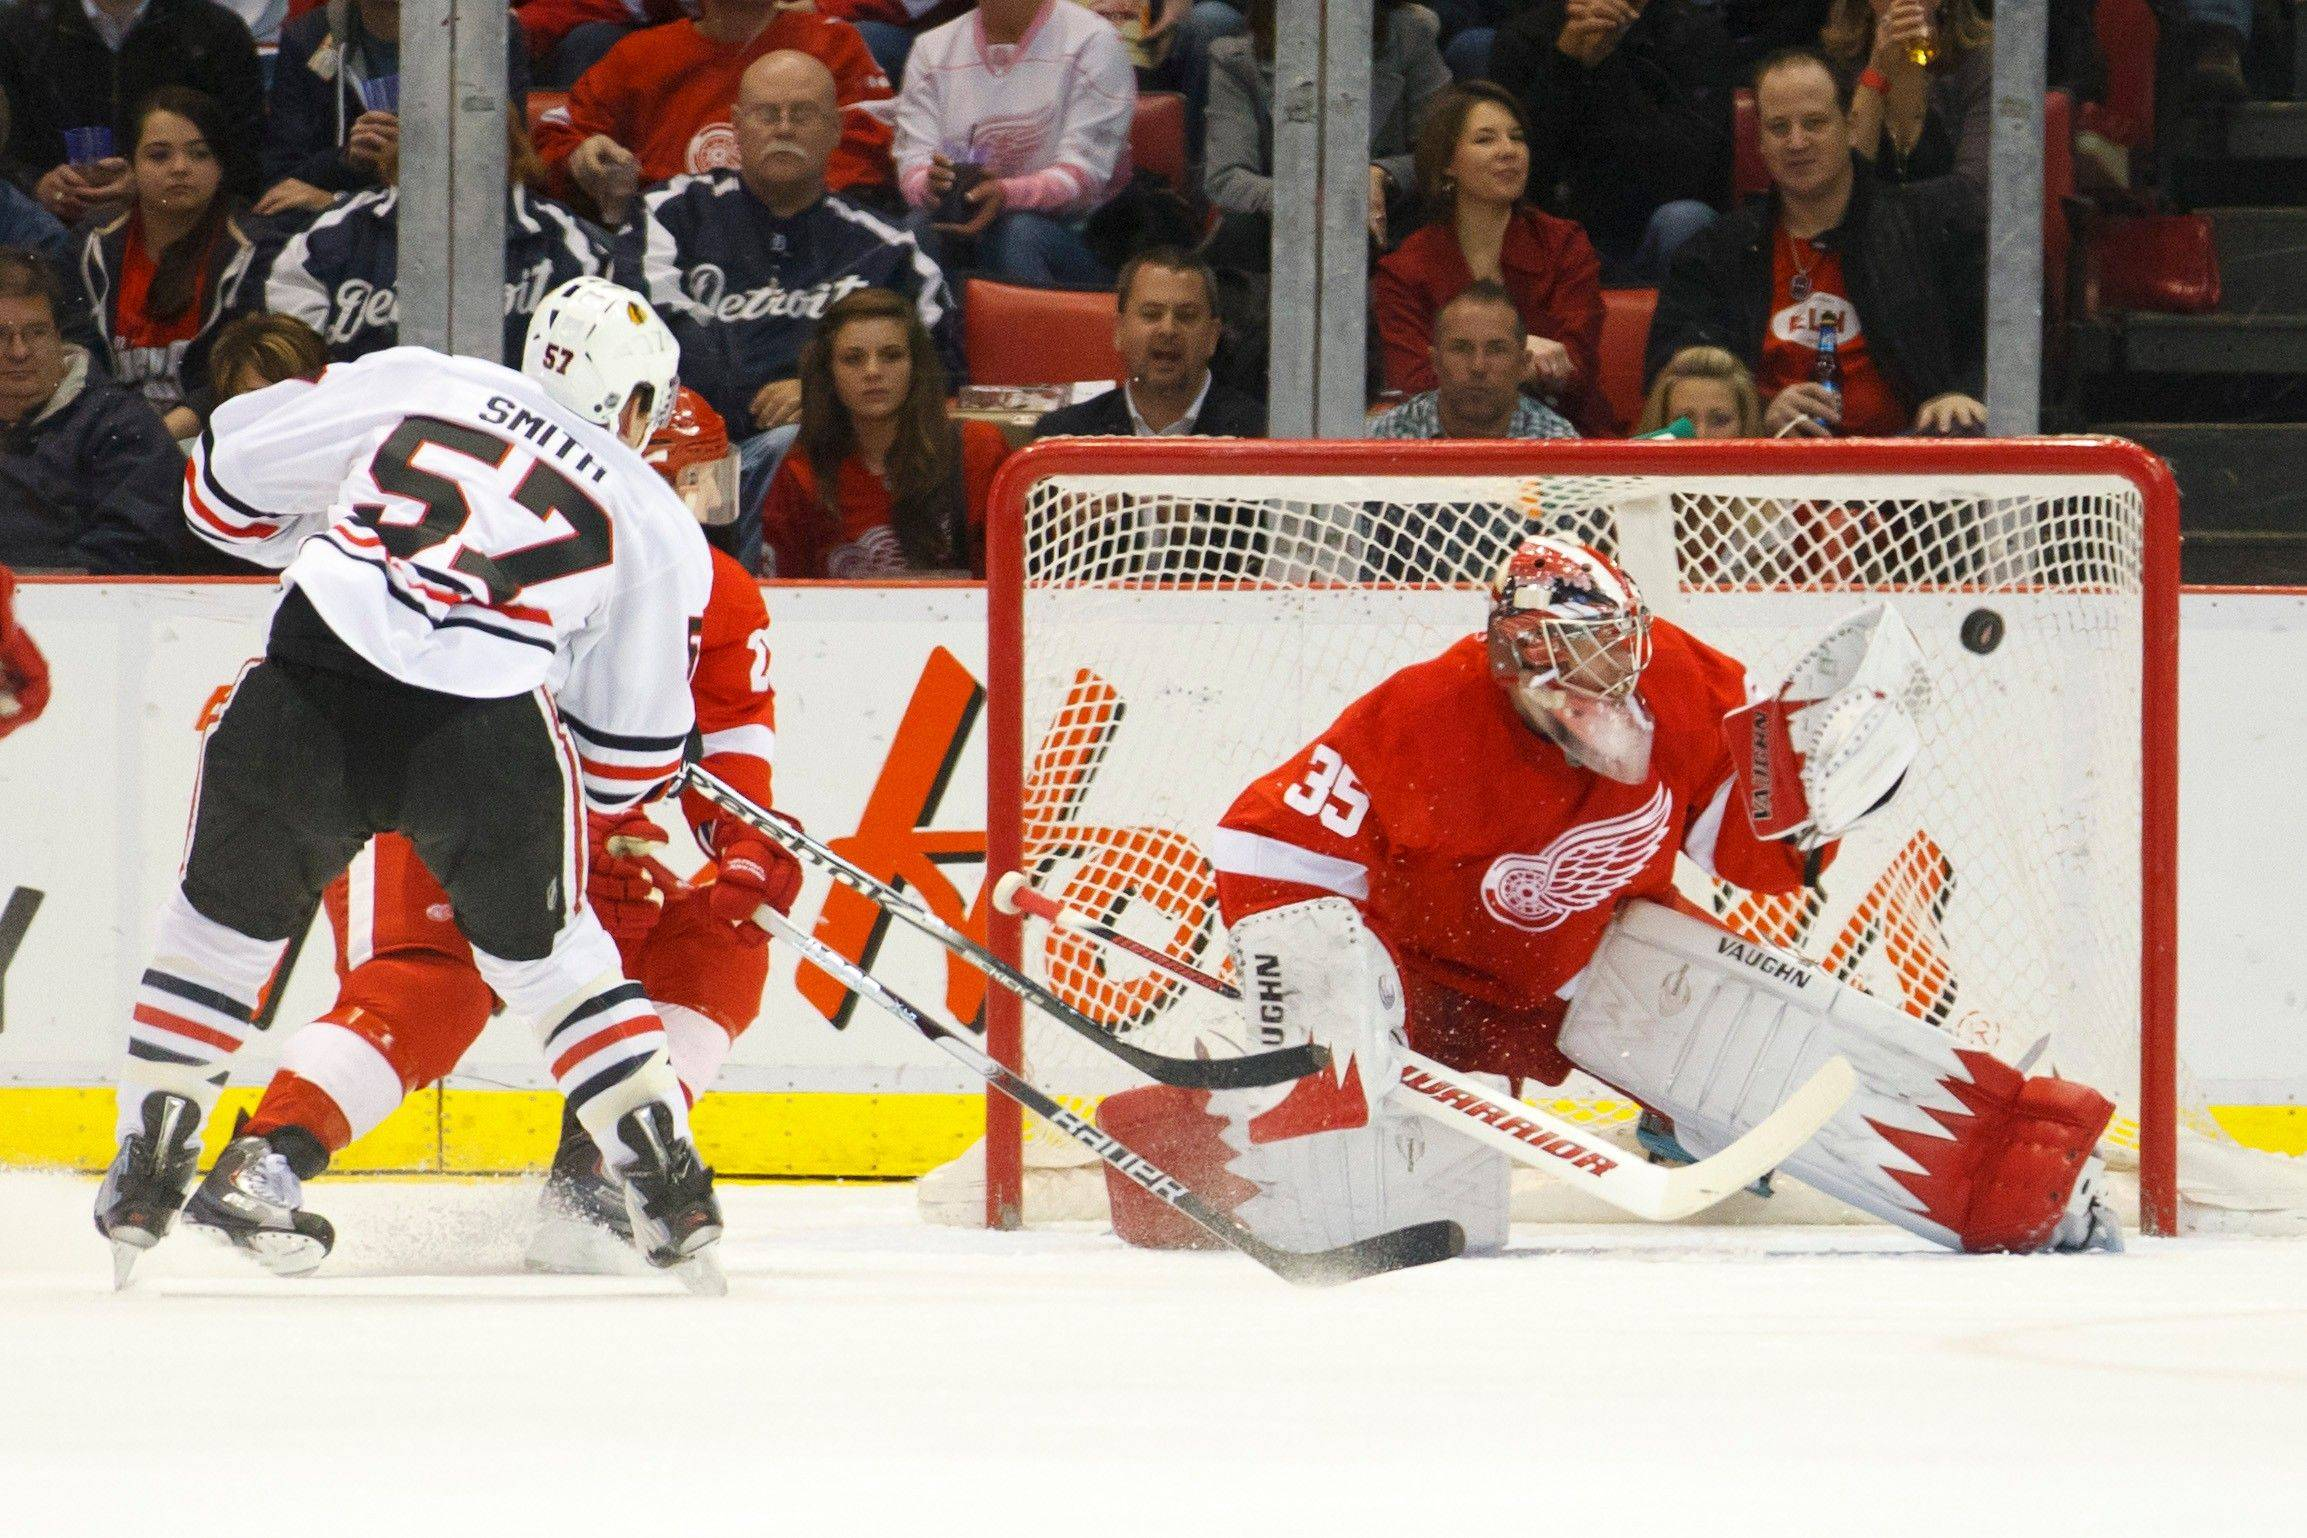 Ben Smith puts the puck past Red Wings goalie Jimmy Howard to give the Blackhawks a 2-0 lead in the first period Friday night in Detroit.